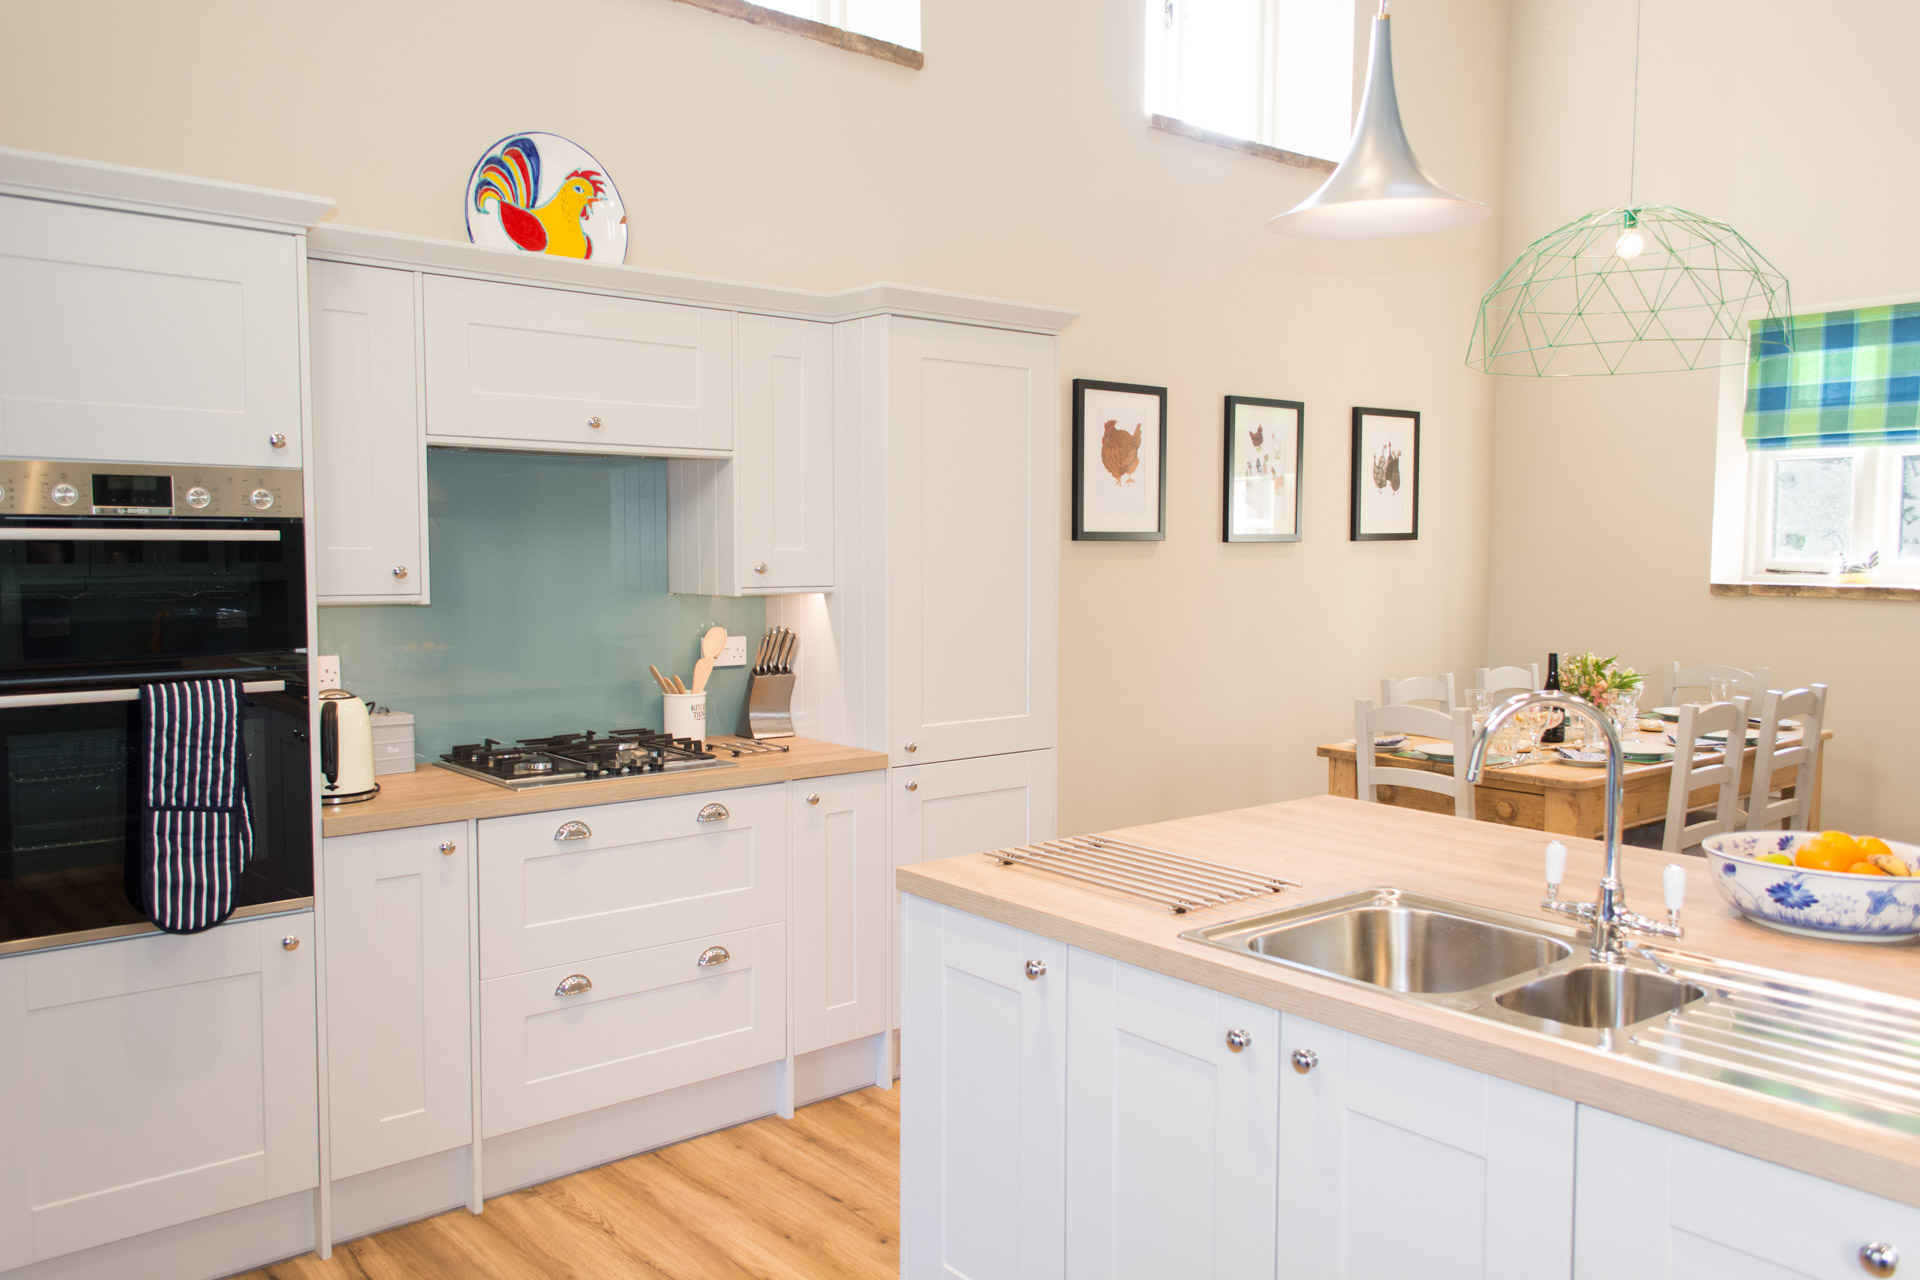 Kitchen facilities and dining table.